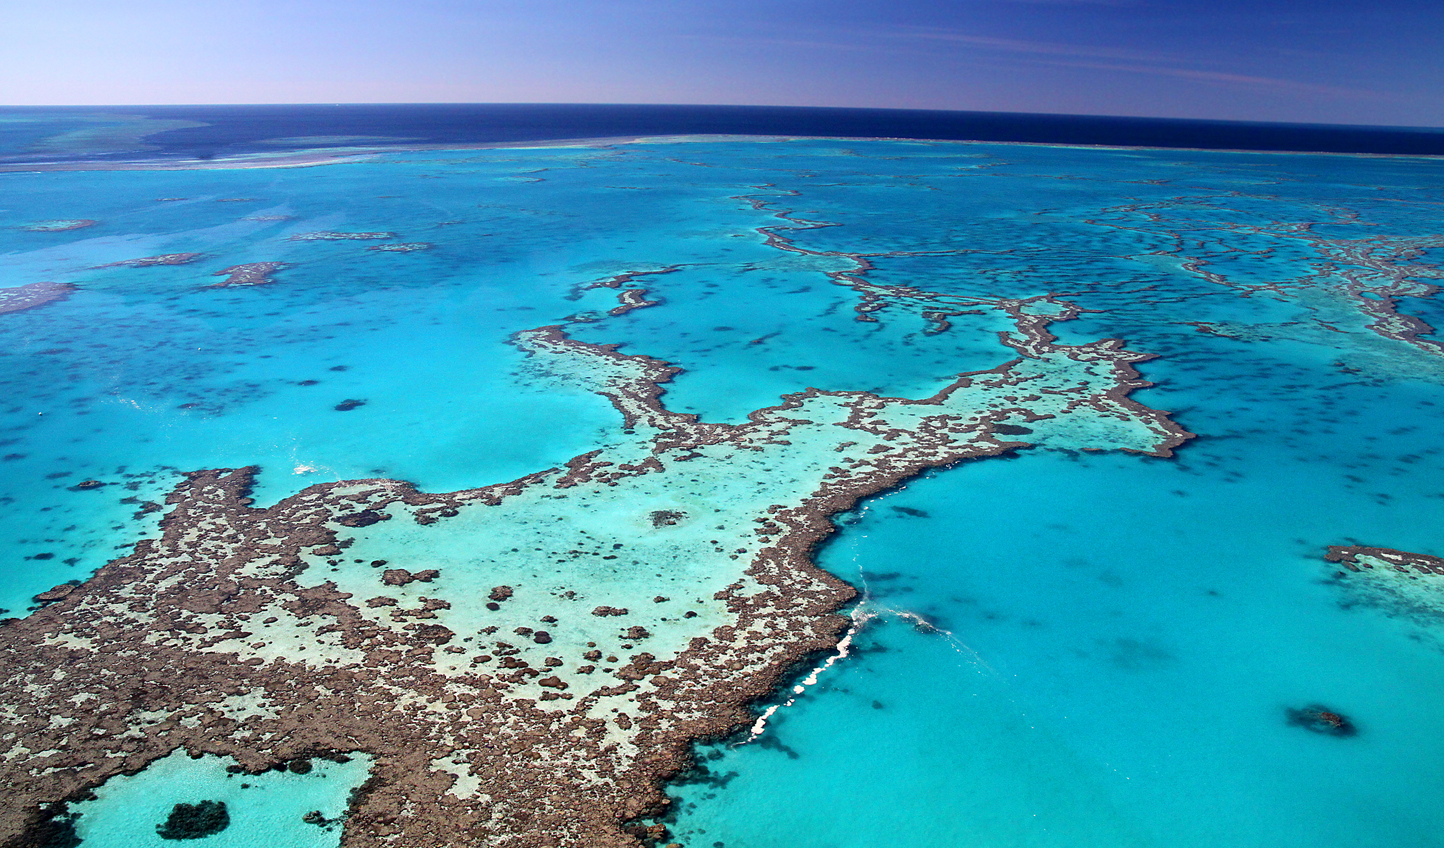 Discover the marine paradise of the Great Barrier Reef